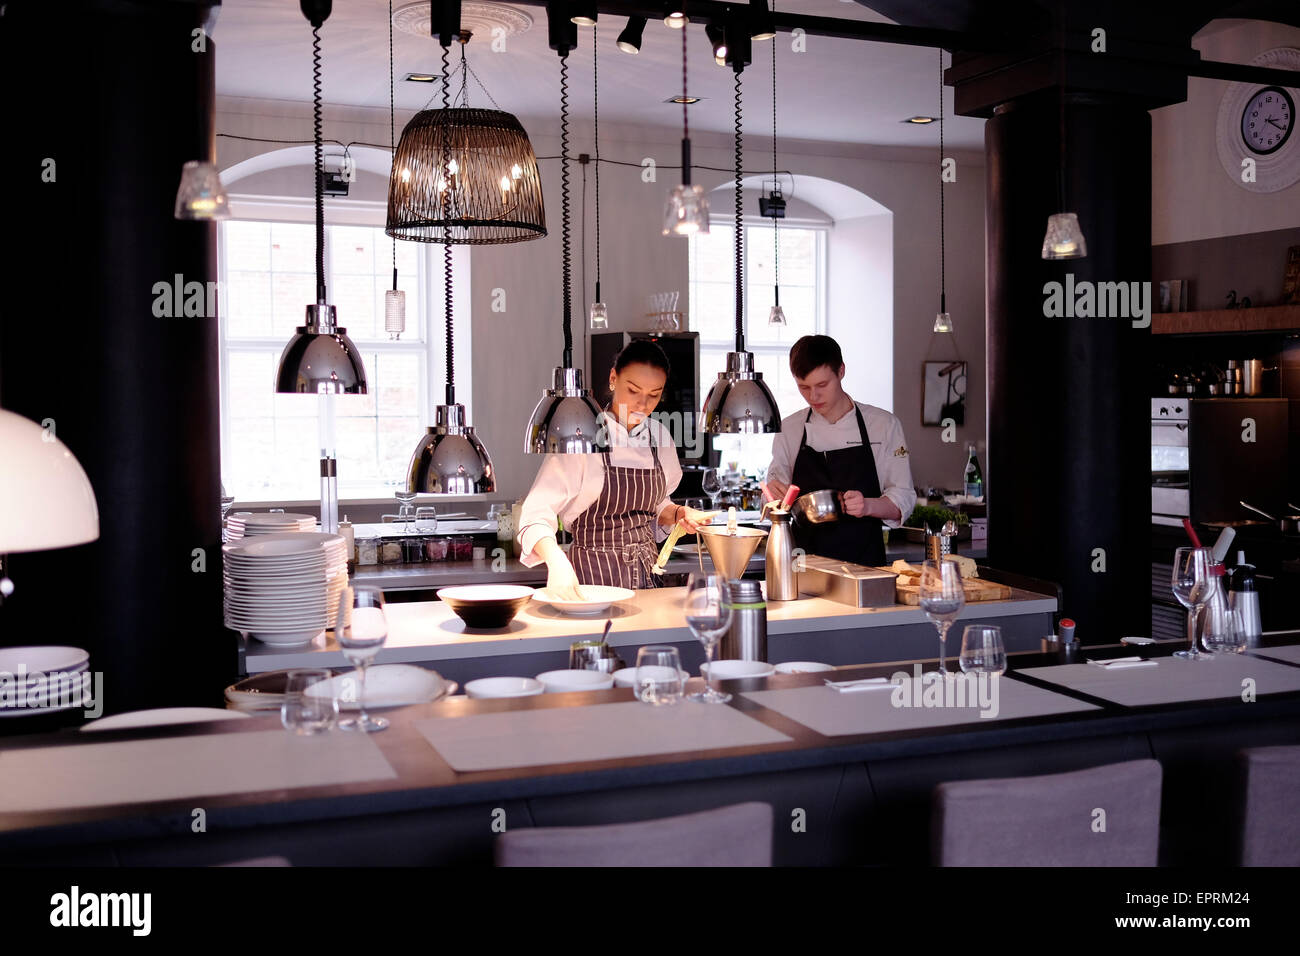 Young waiters at the 3 chef restaurant 'Tam labam bus augt' ( Translation - What's Good Will Grow) in - Stock Image